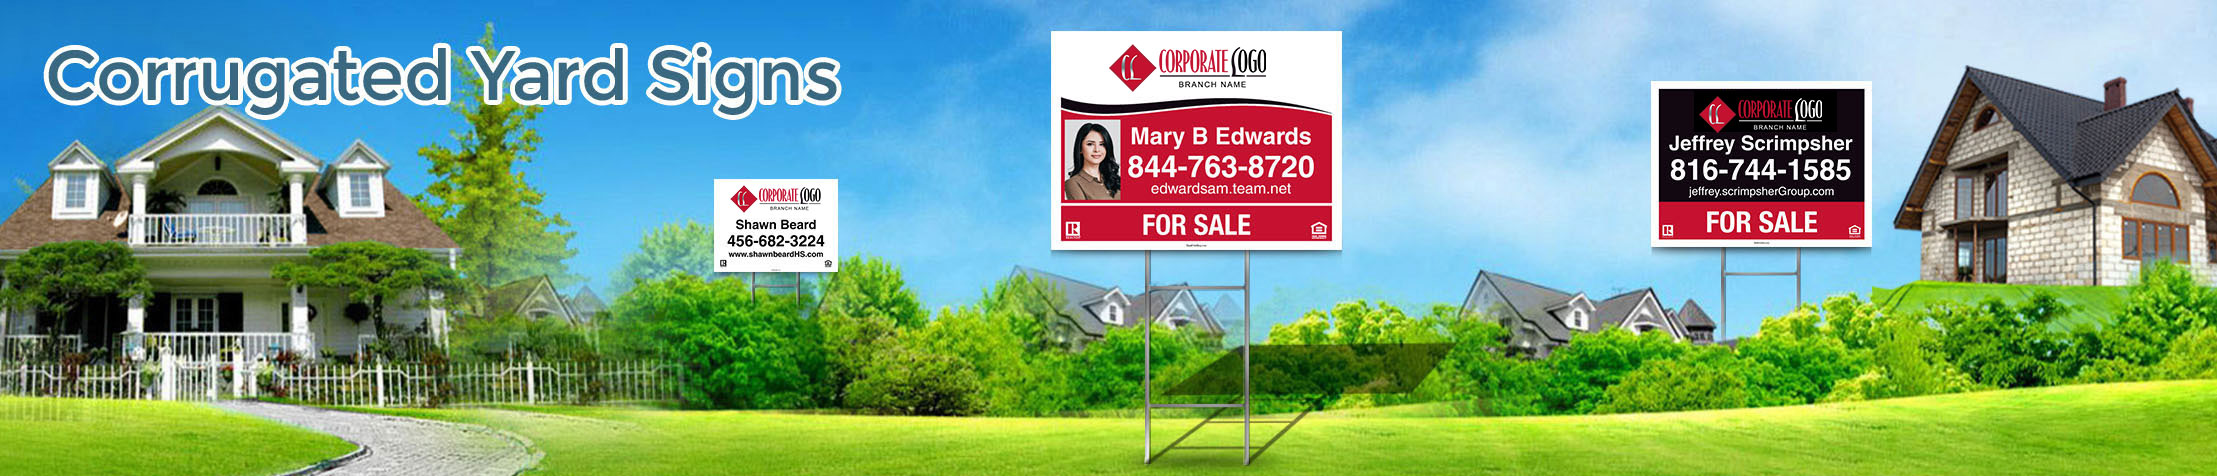 HomeSmart Real Estate Corrugated Yard Signs - HomeSmart Real Estate signs | BestPrintBuy.com